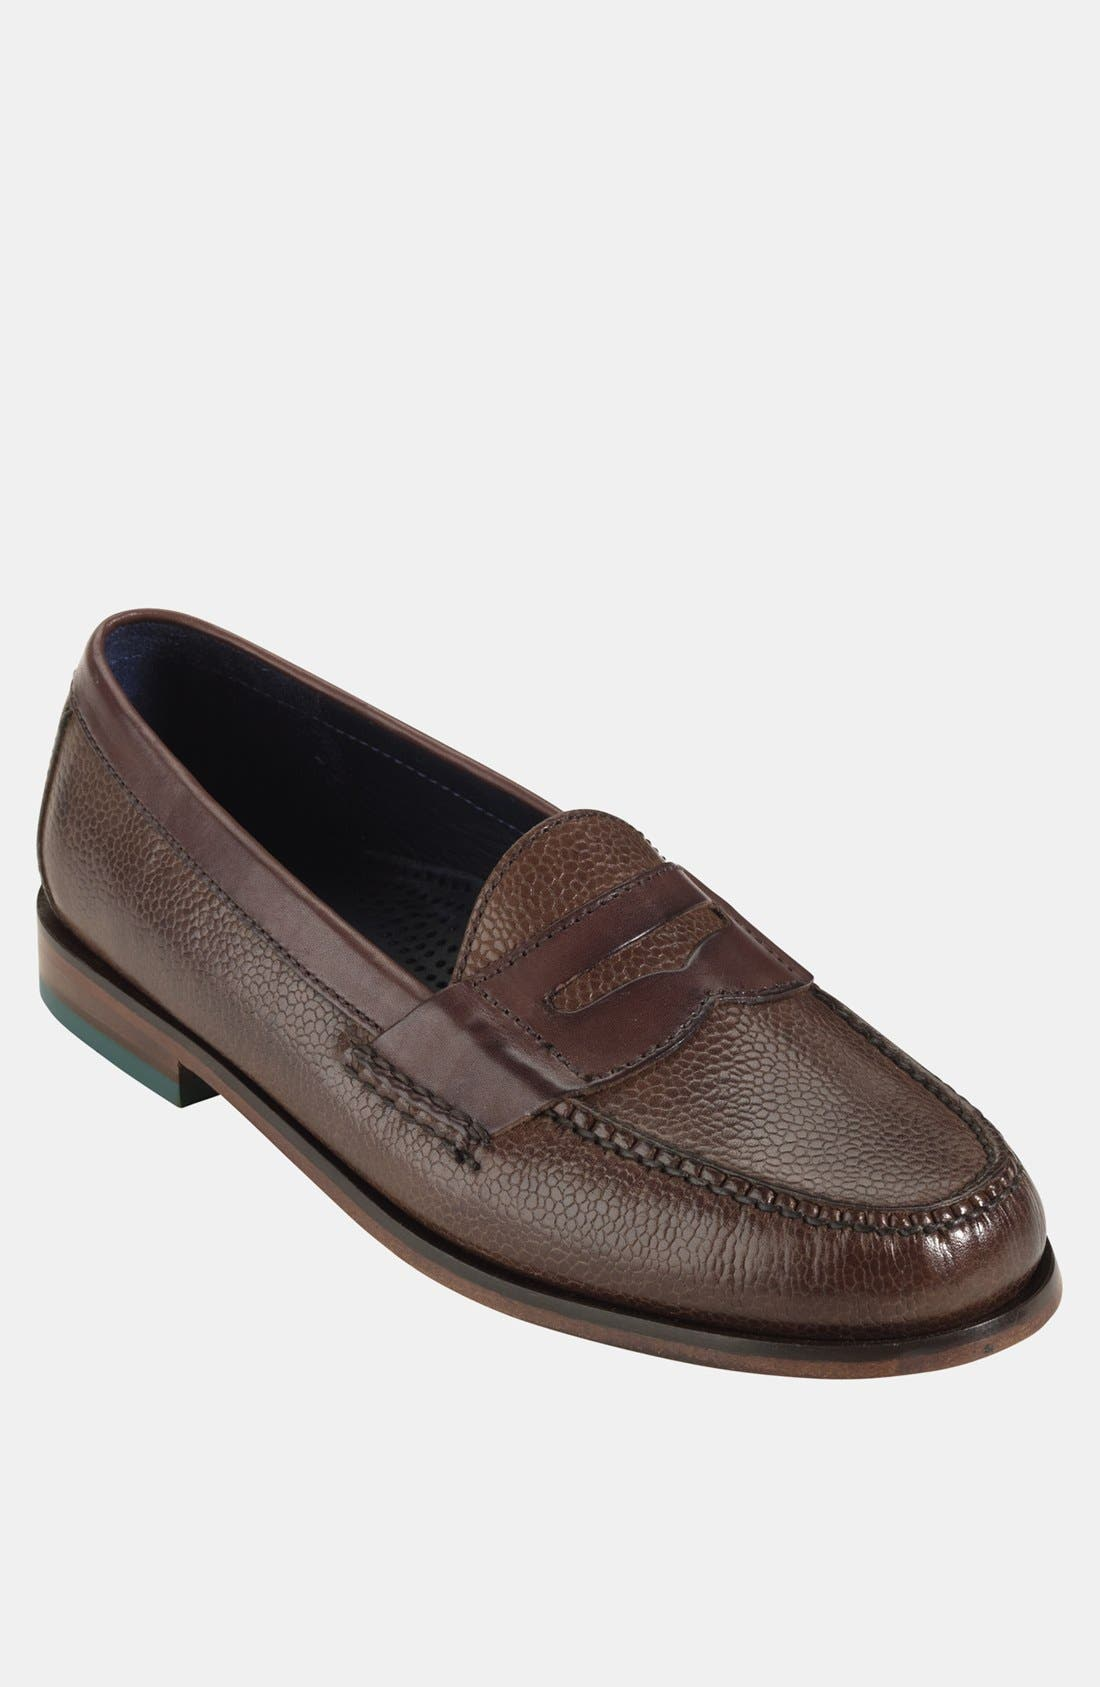 Main Image - Cole Haan Pinch Penny Loafer